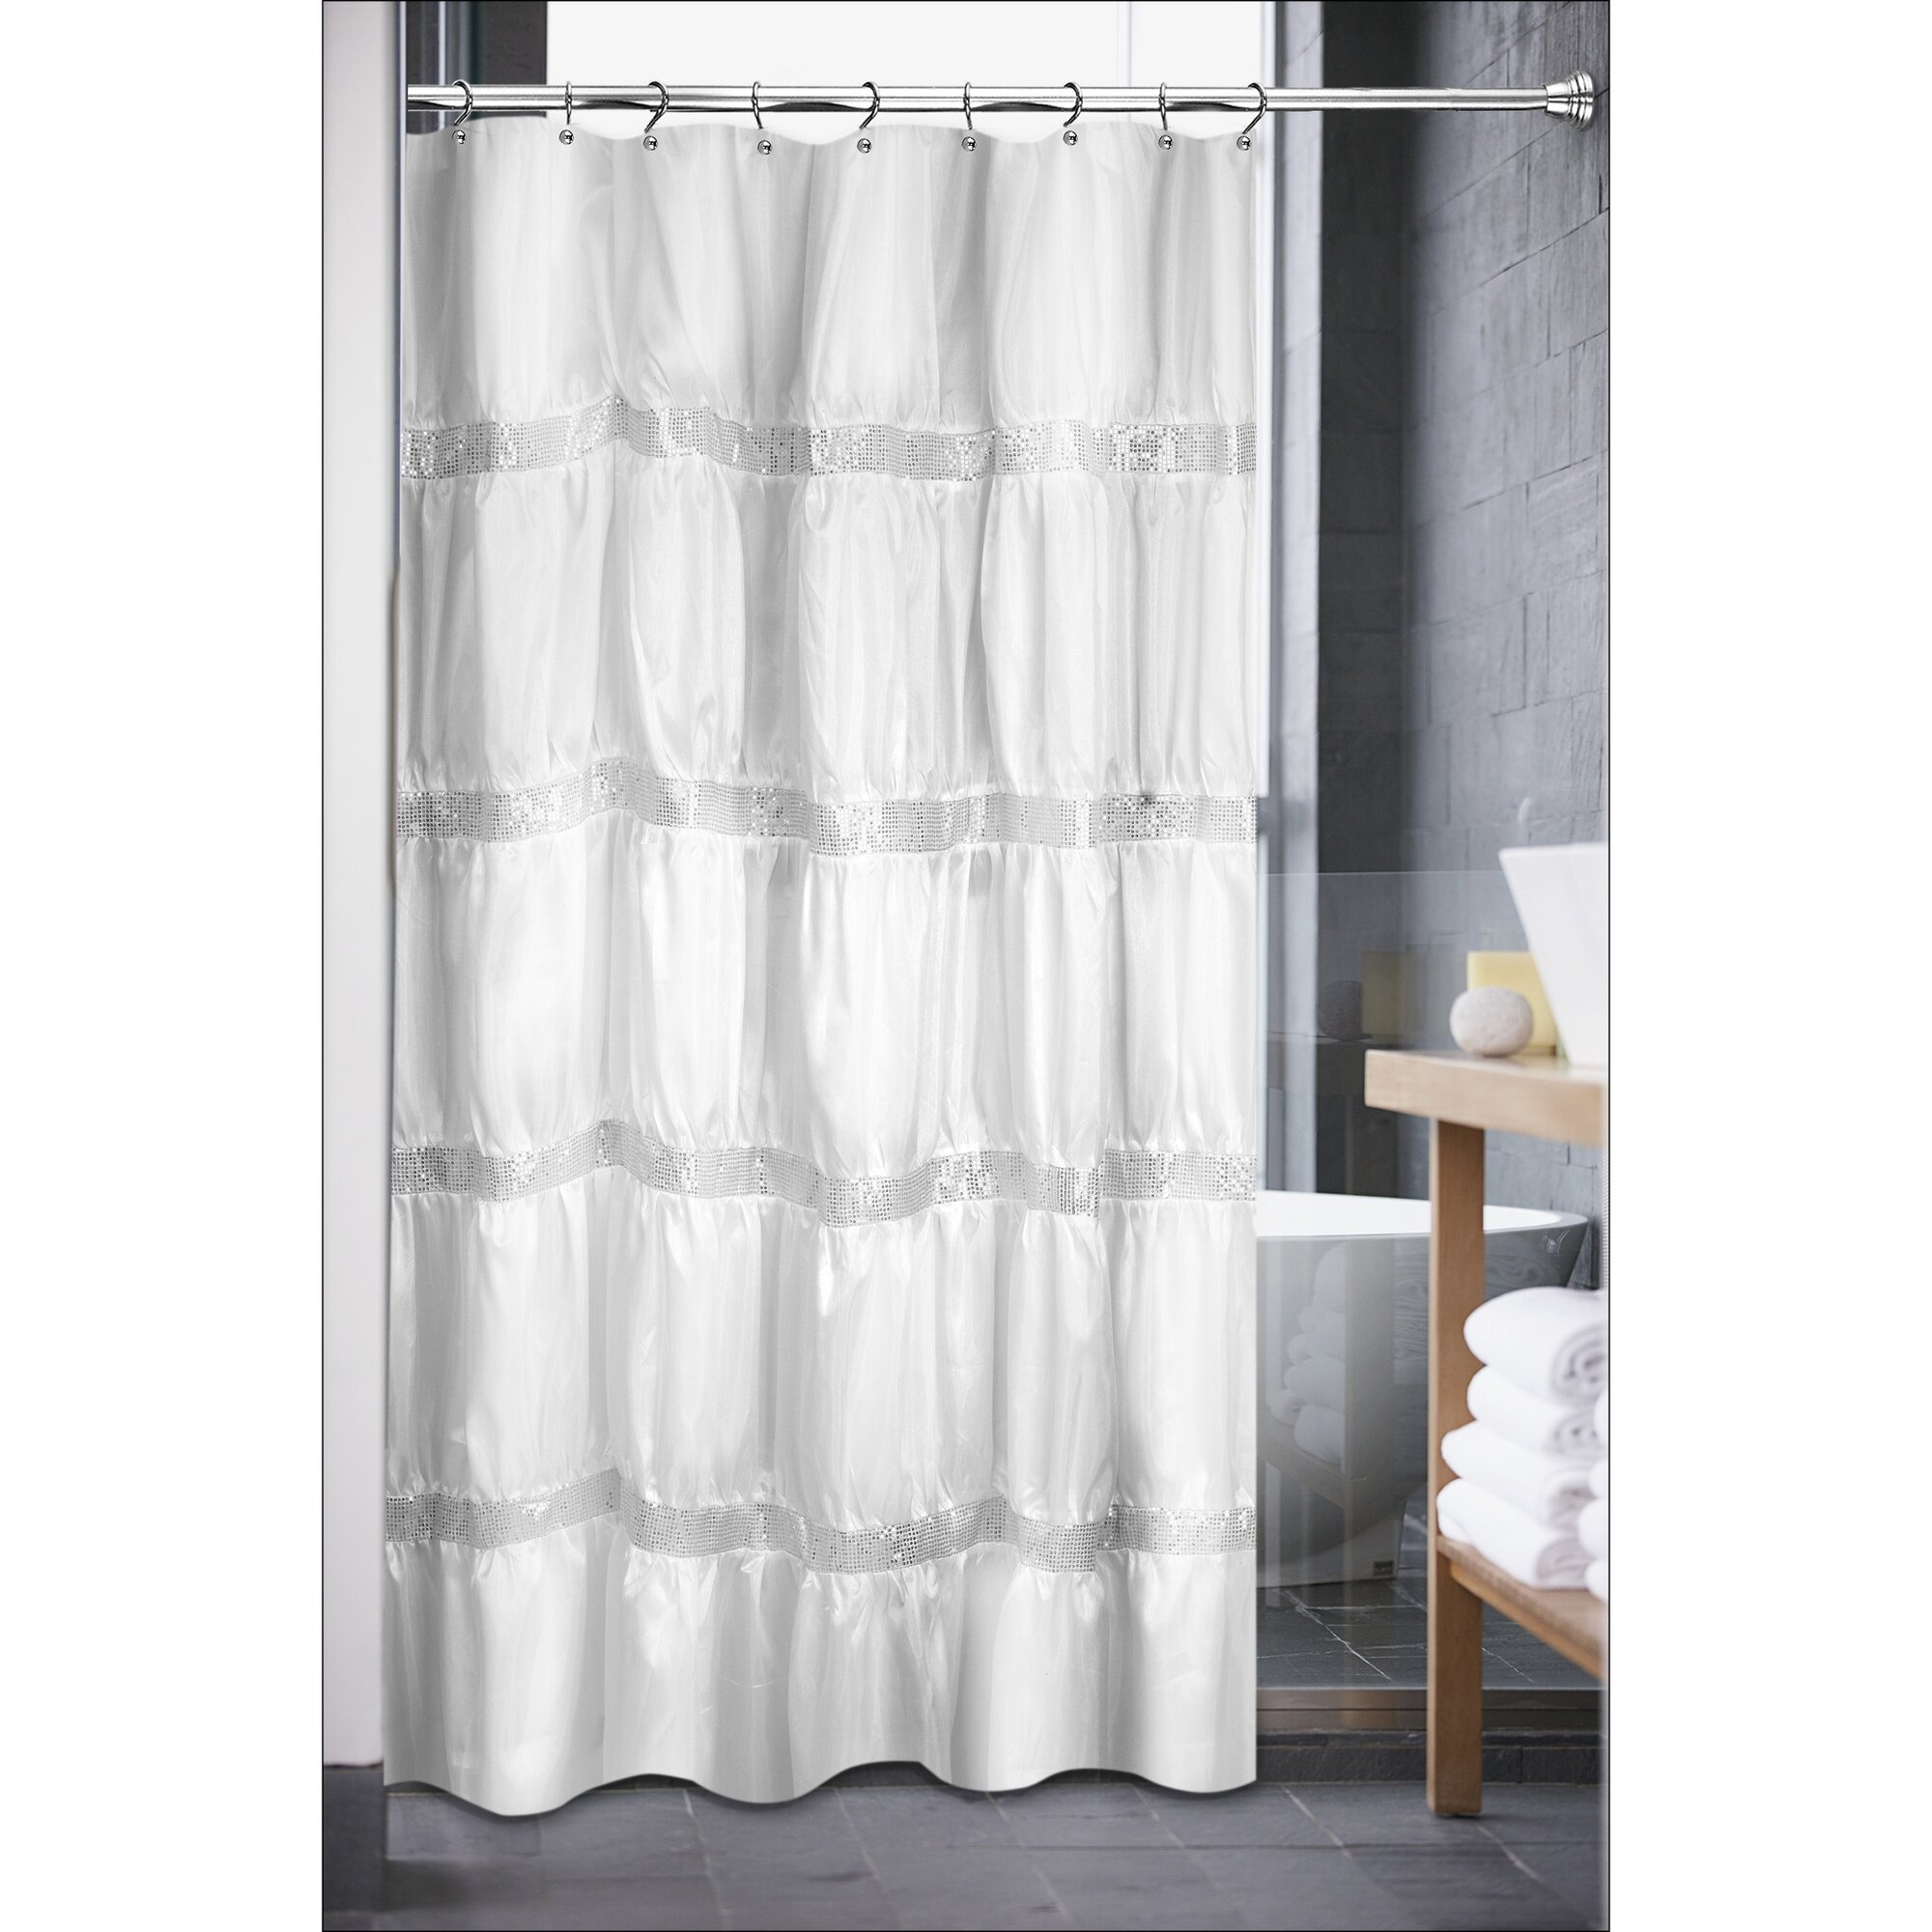 Sinatra silver shower curtain - Sweet Home Collection Luxurious Rhinestone Shower Curtain